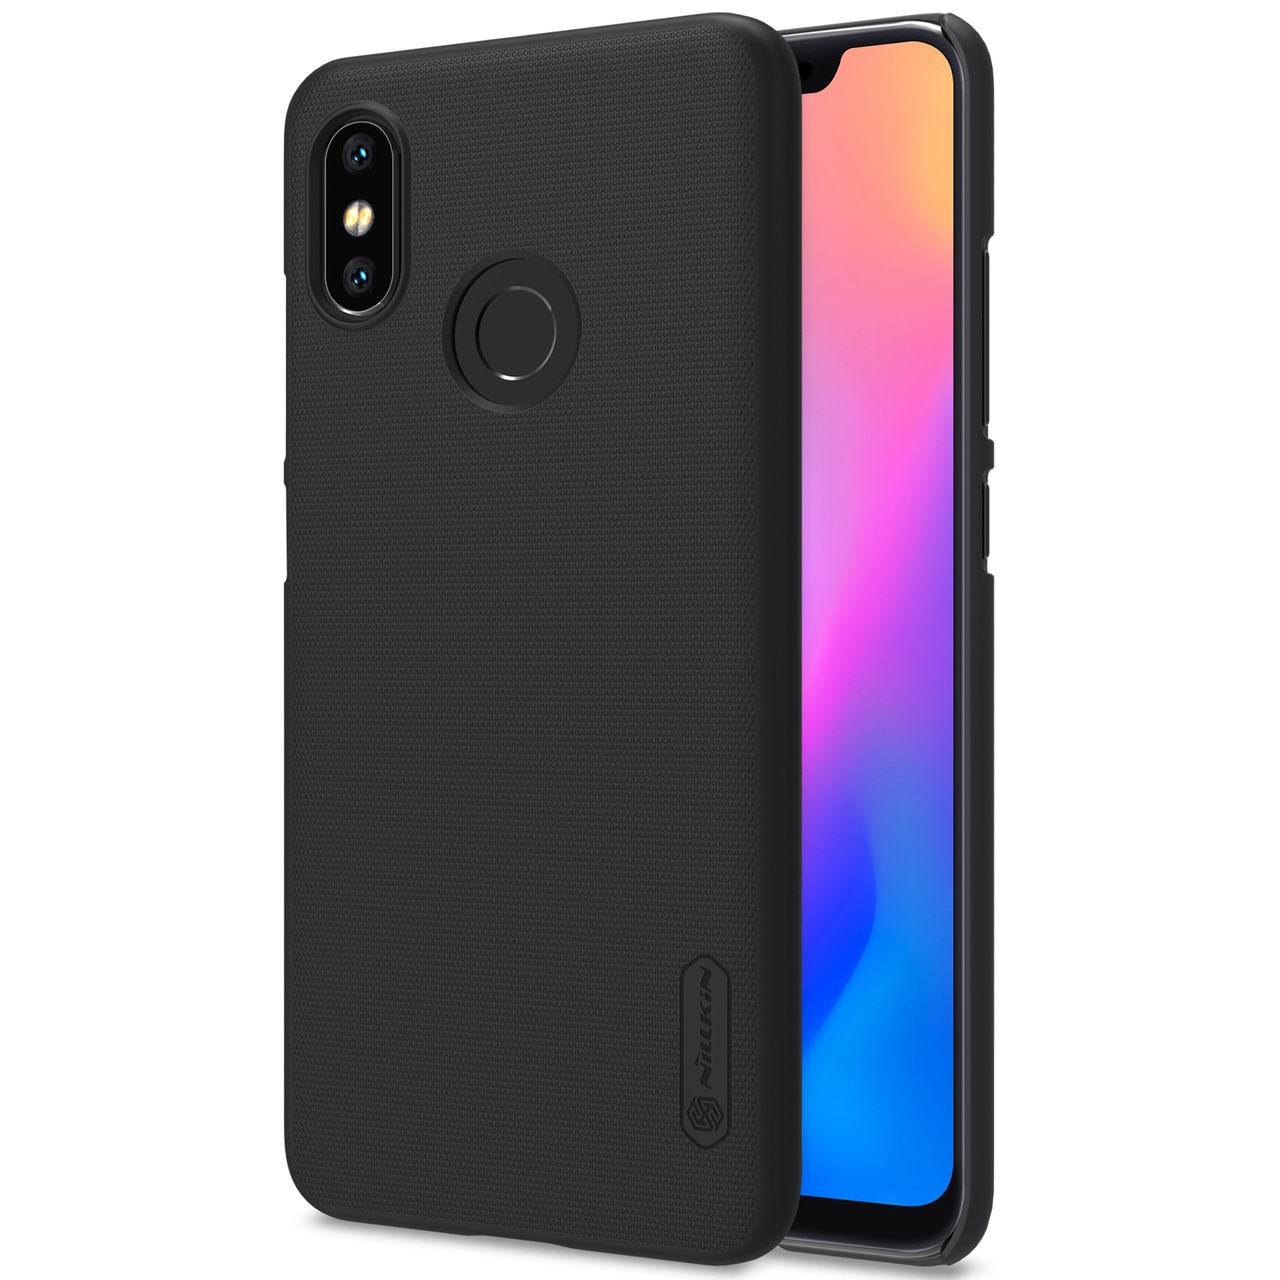 Xiaomi Mi 8 Frosted Shield Hard Back Cover by Nillkin - Black